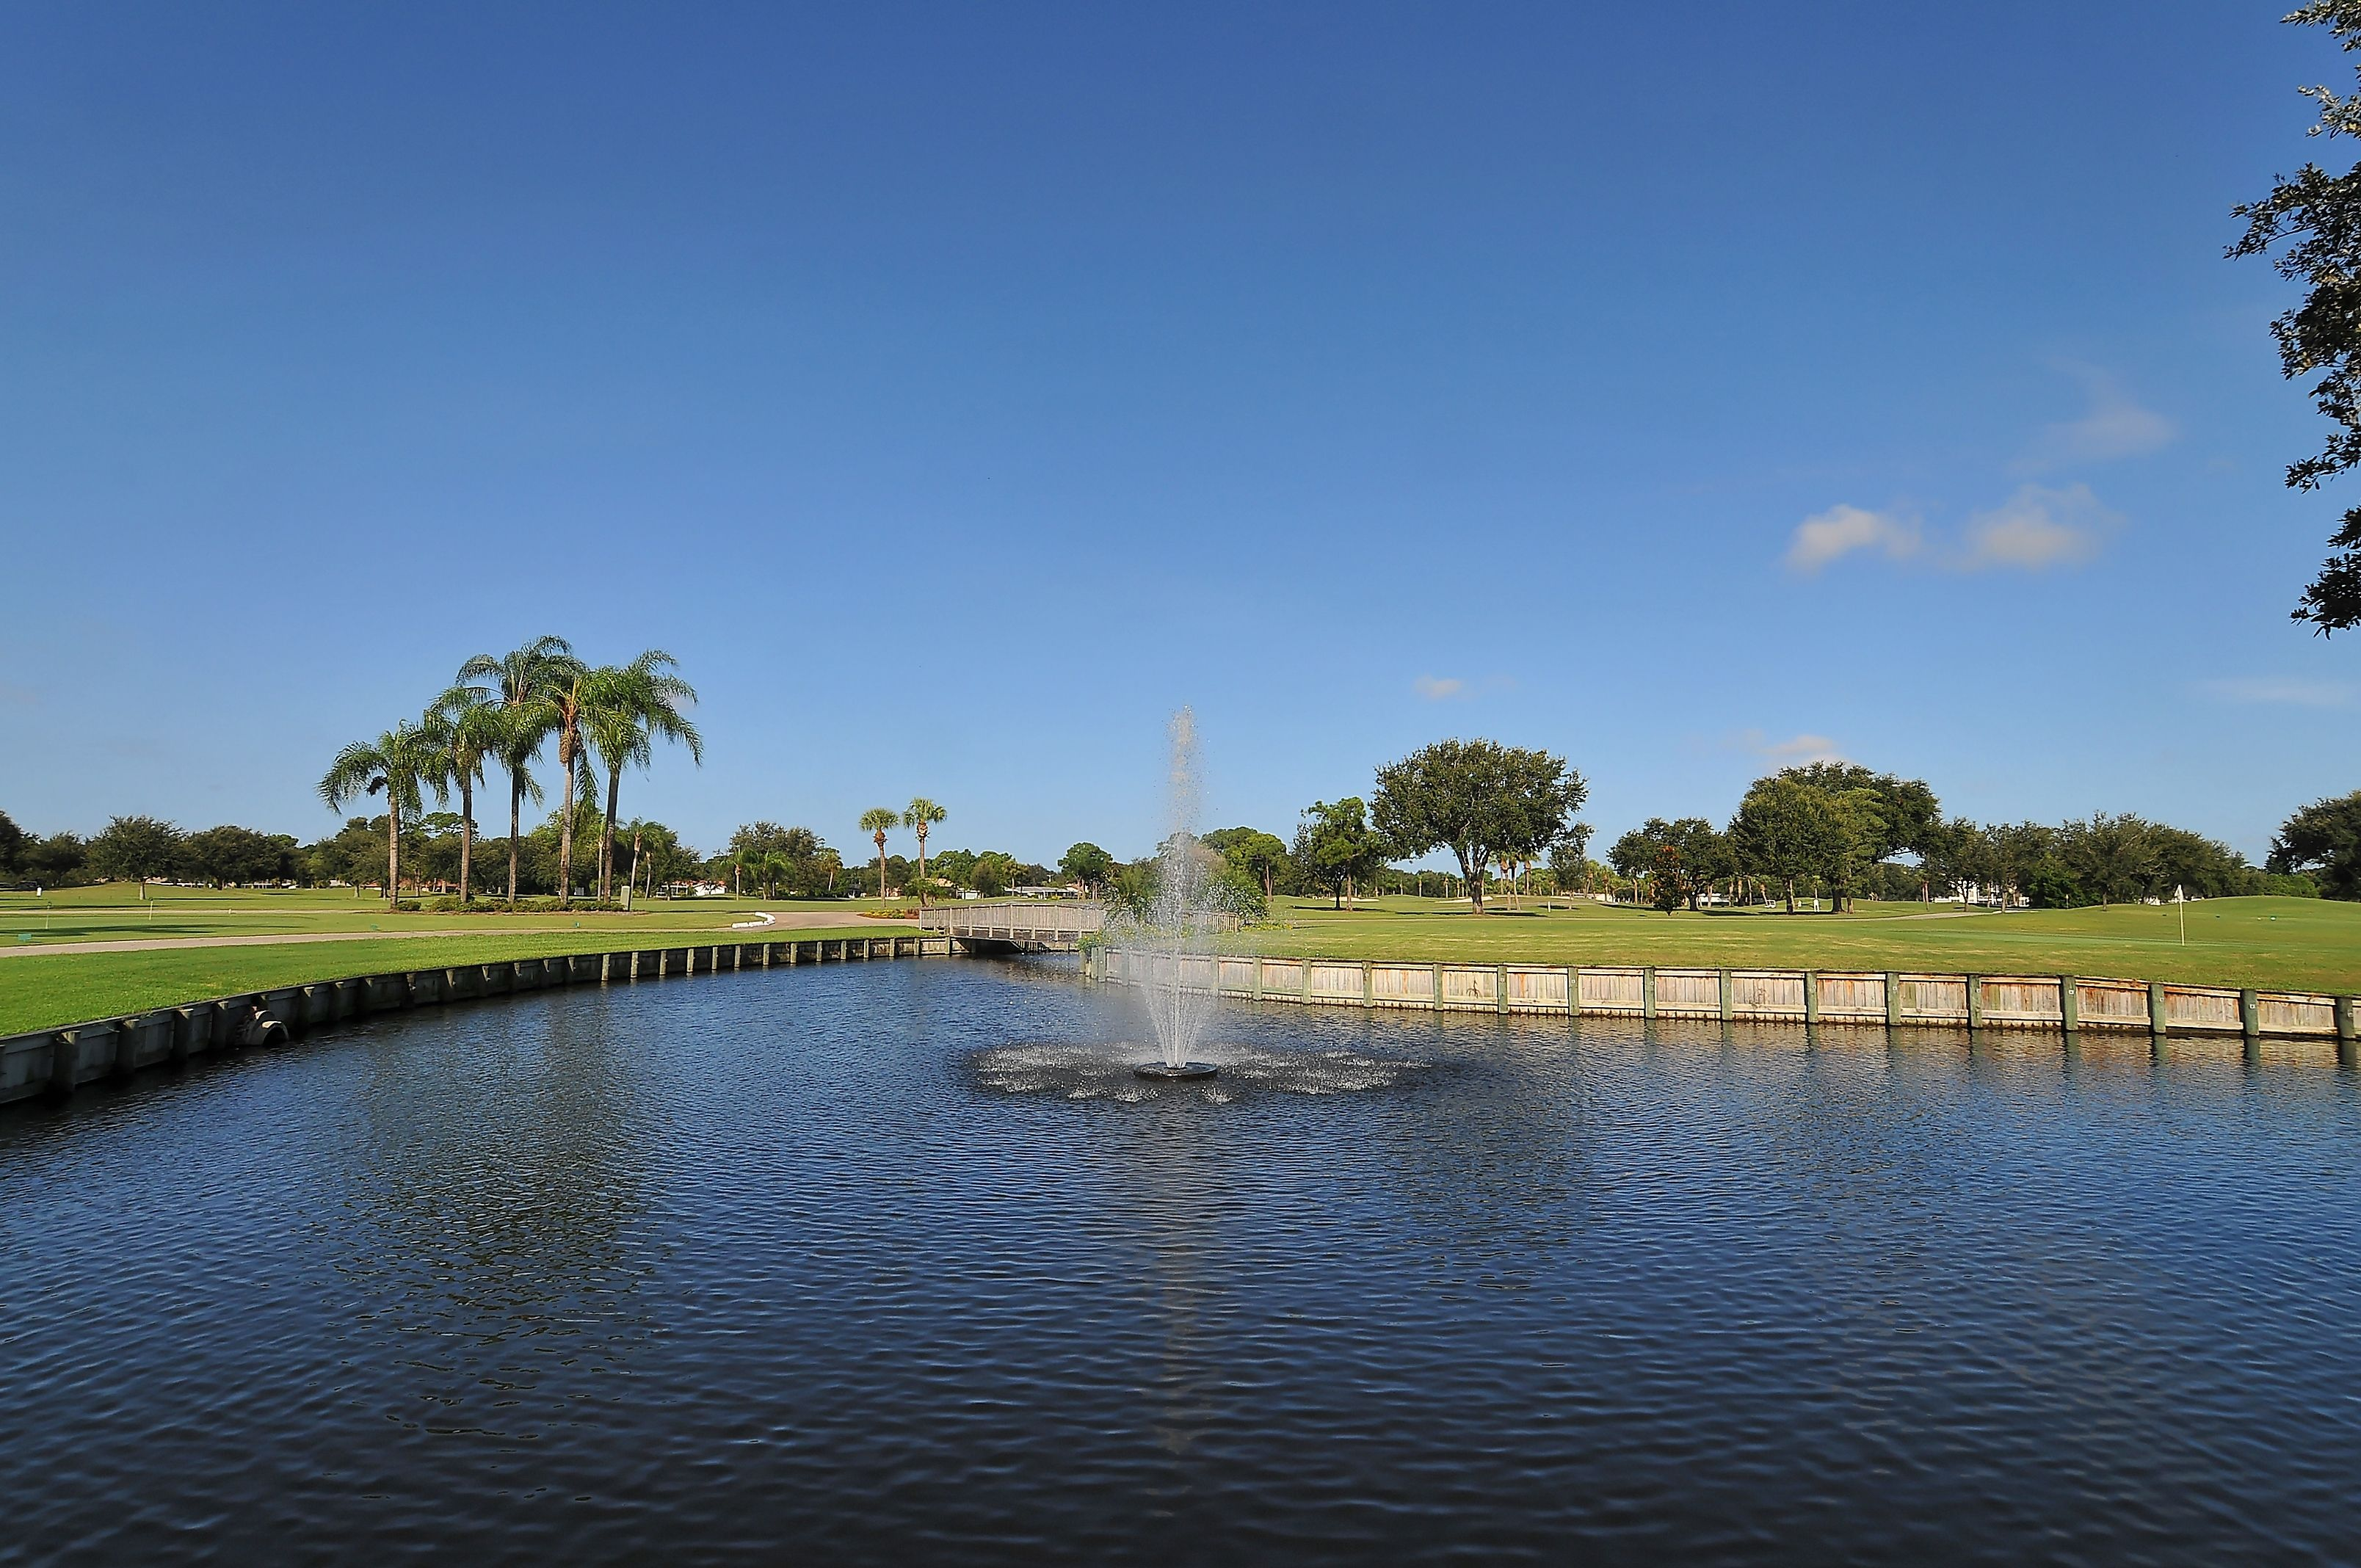 Golf course at Palm Aire Country Club, Sarasota, FL